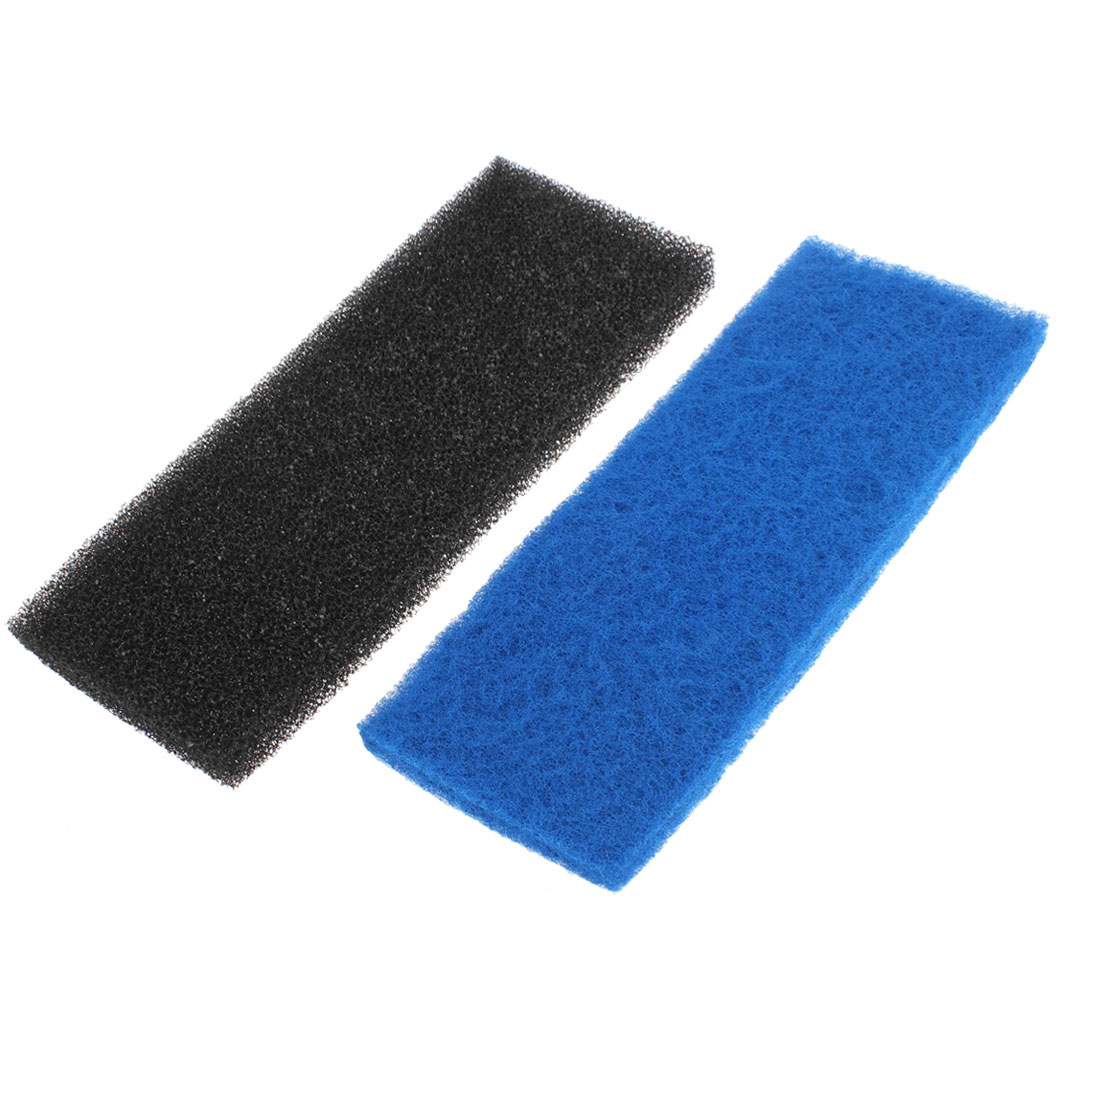 Aquarium Double Layer Biochemical Filter Sponge Filtration Pad Black Blue 2pcs